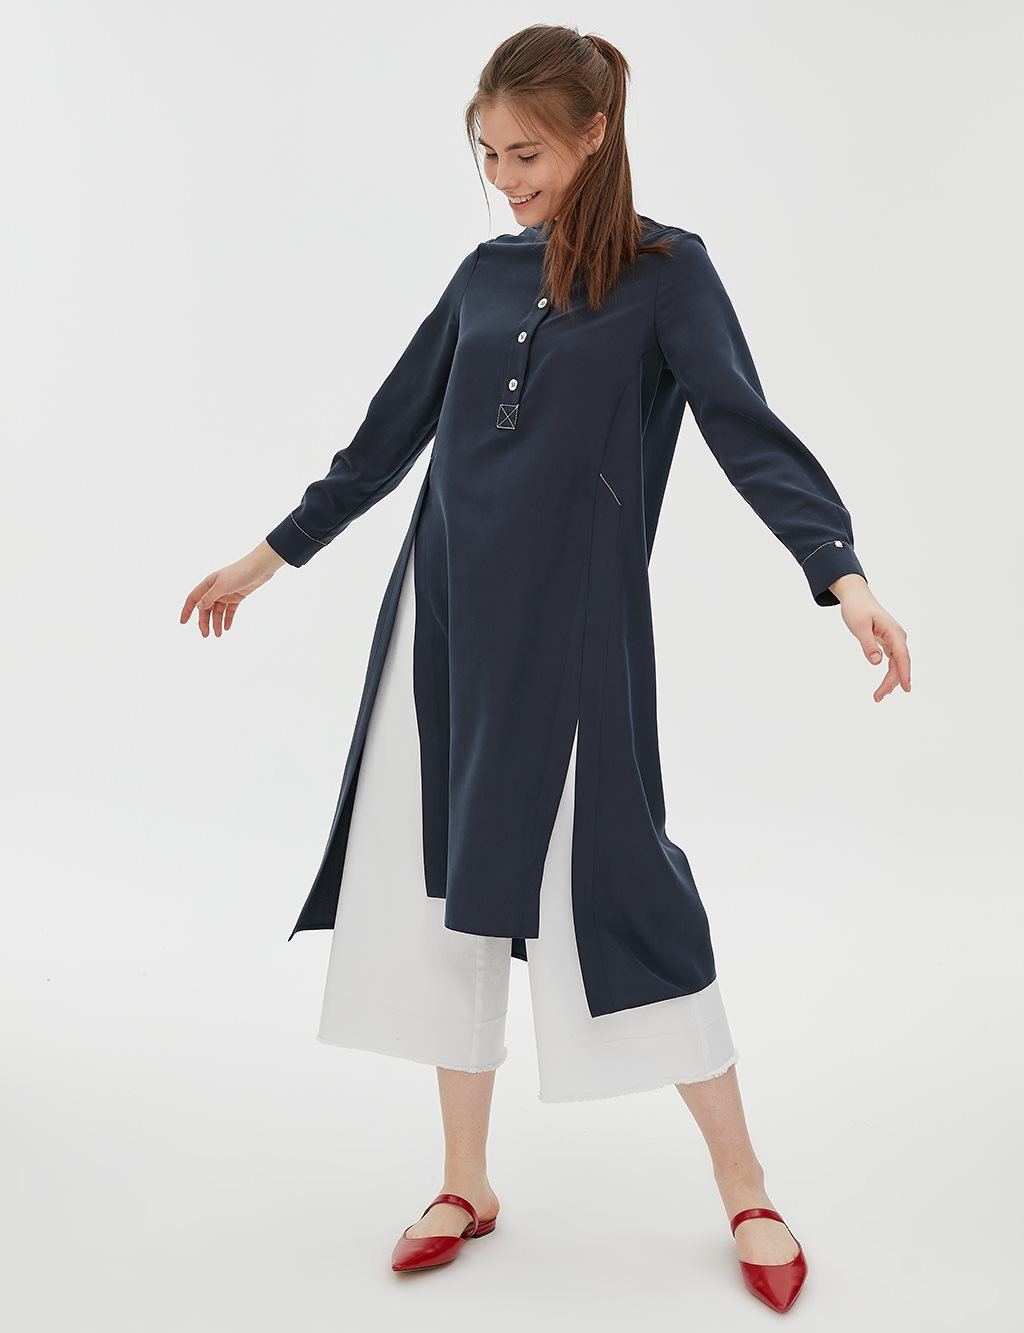 KYR Slit Tunic B20 81007 Navy